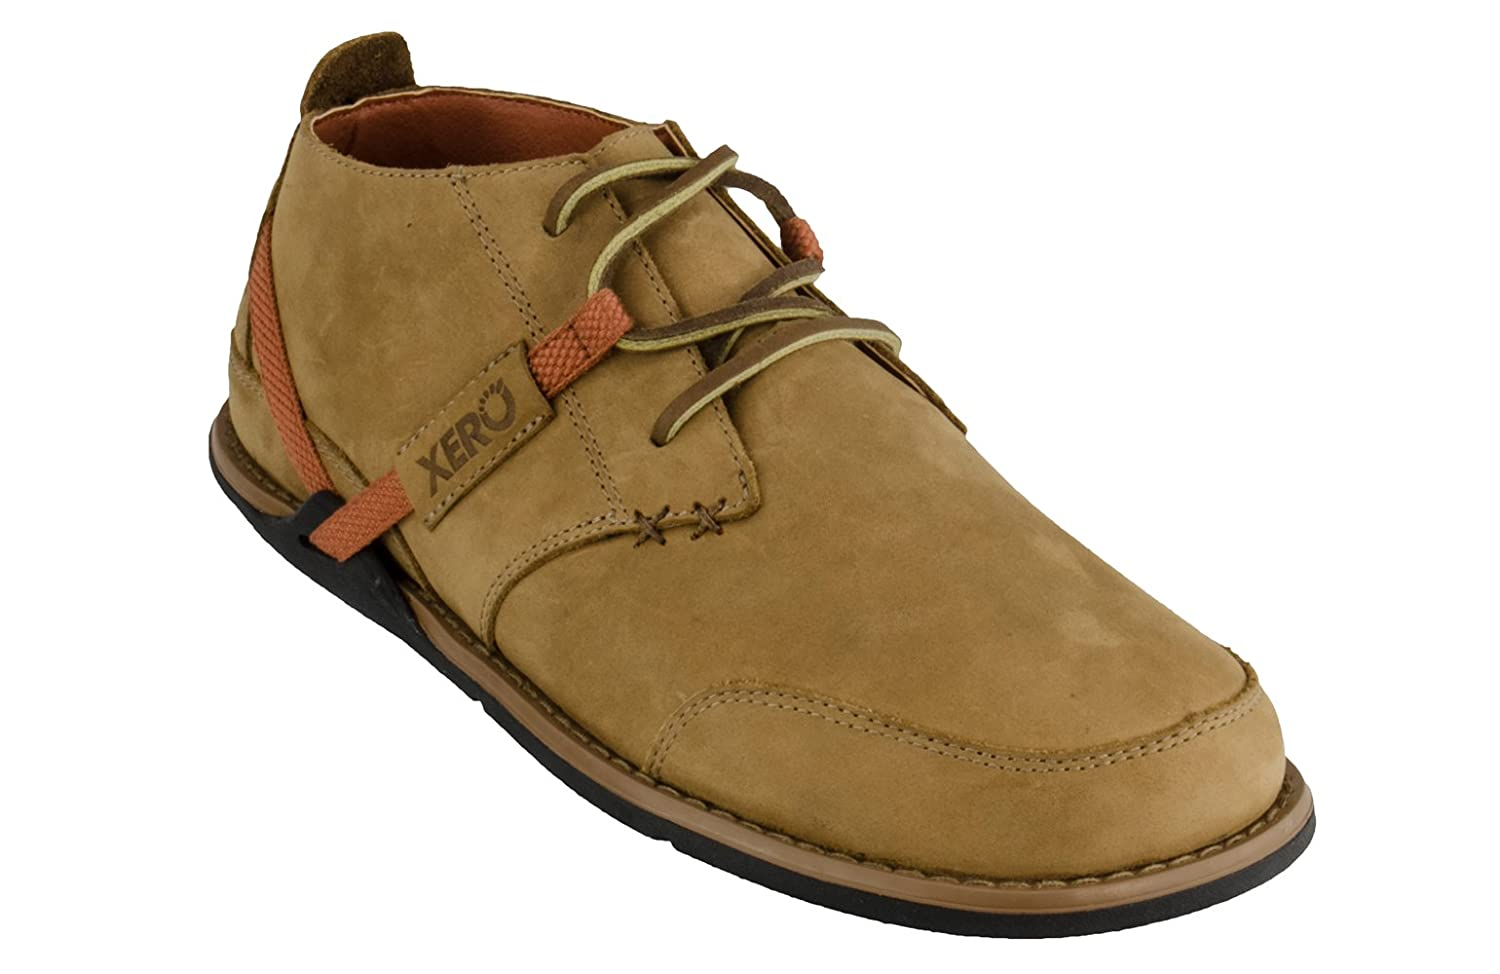 Xero Shoes Coalton - Chukka Style, Minimalist, Zero-Drop Low Leather Boot - Men CCM-BKBK-PP